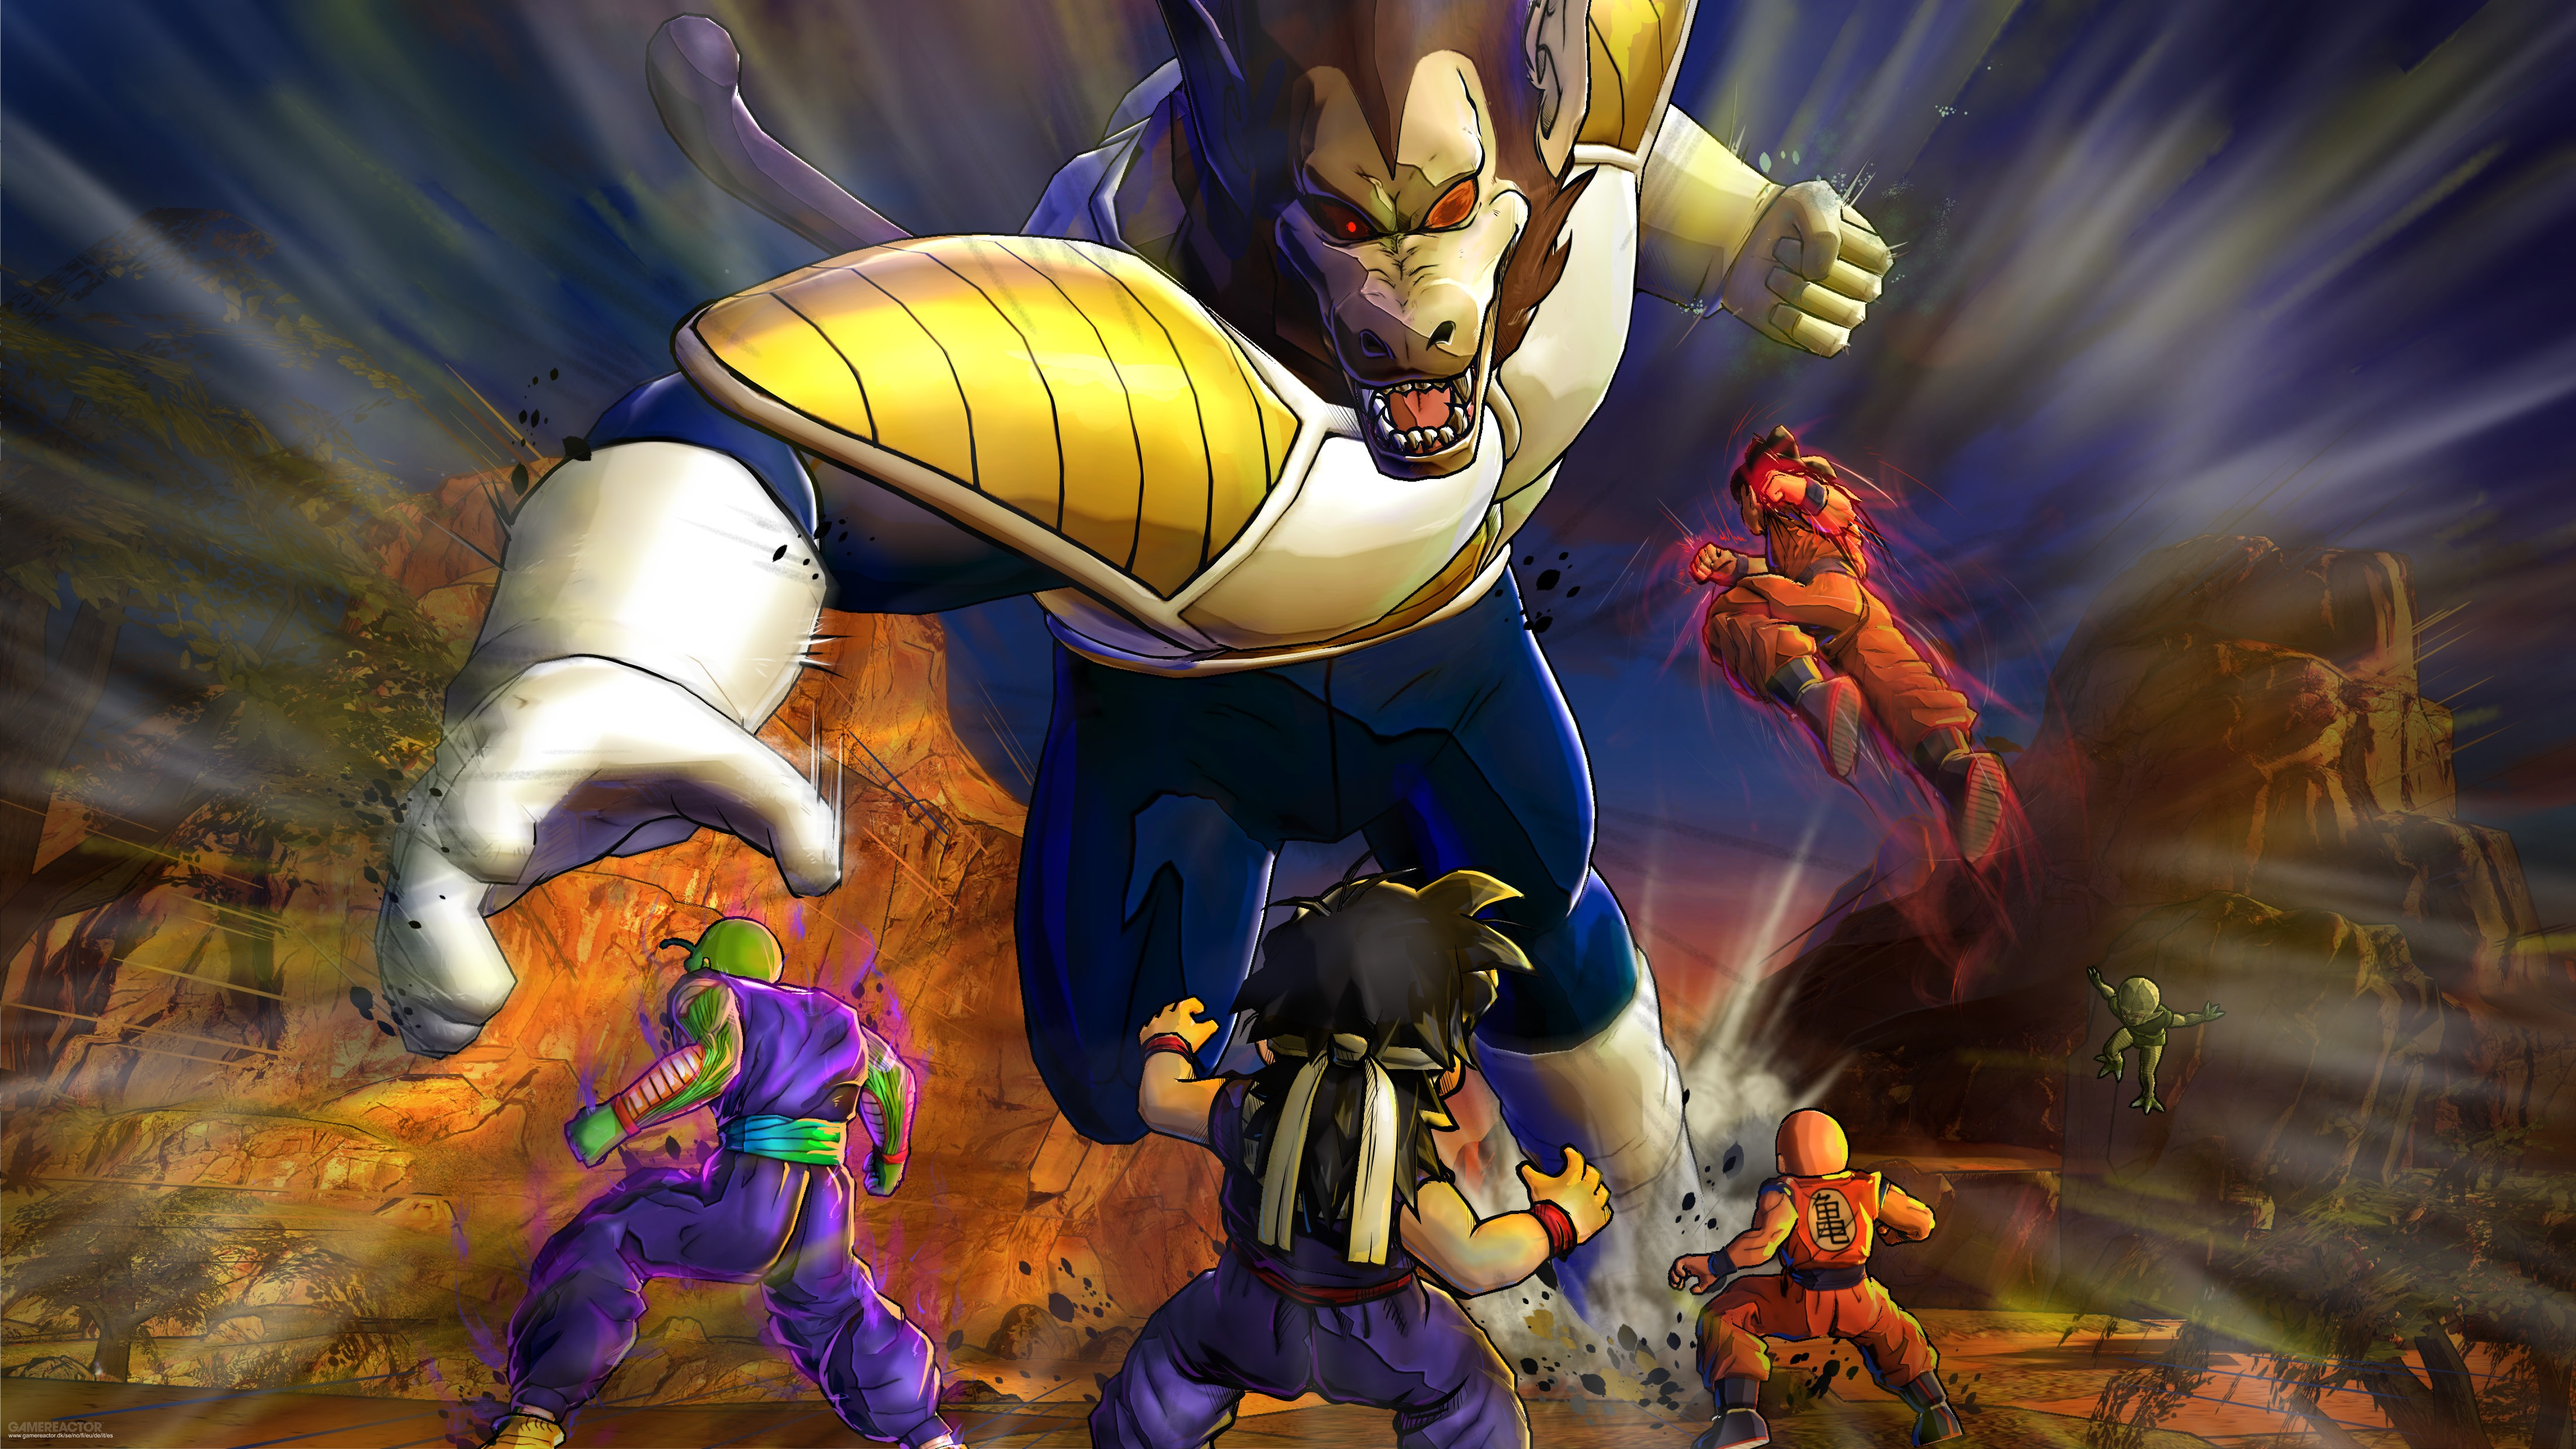 Dragon ball z battle of z nova fun o online - Photo dragon ball z ...